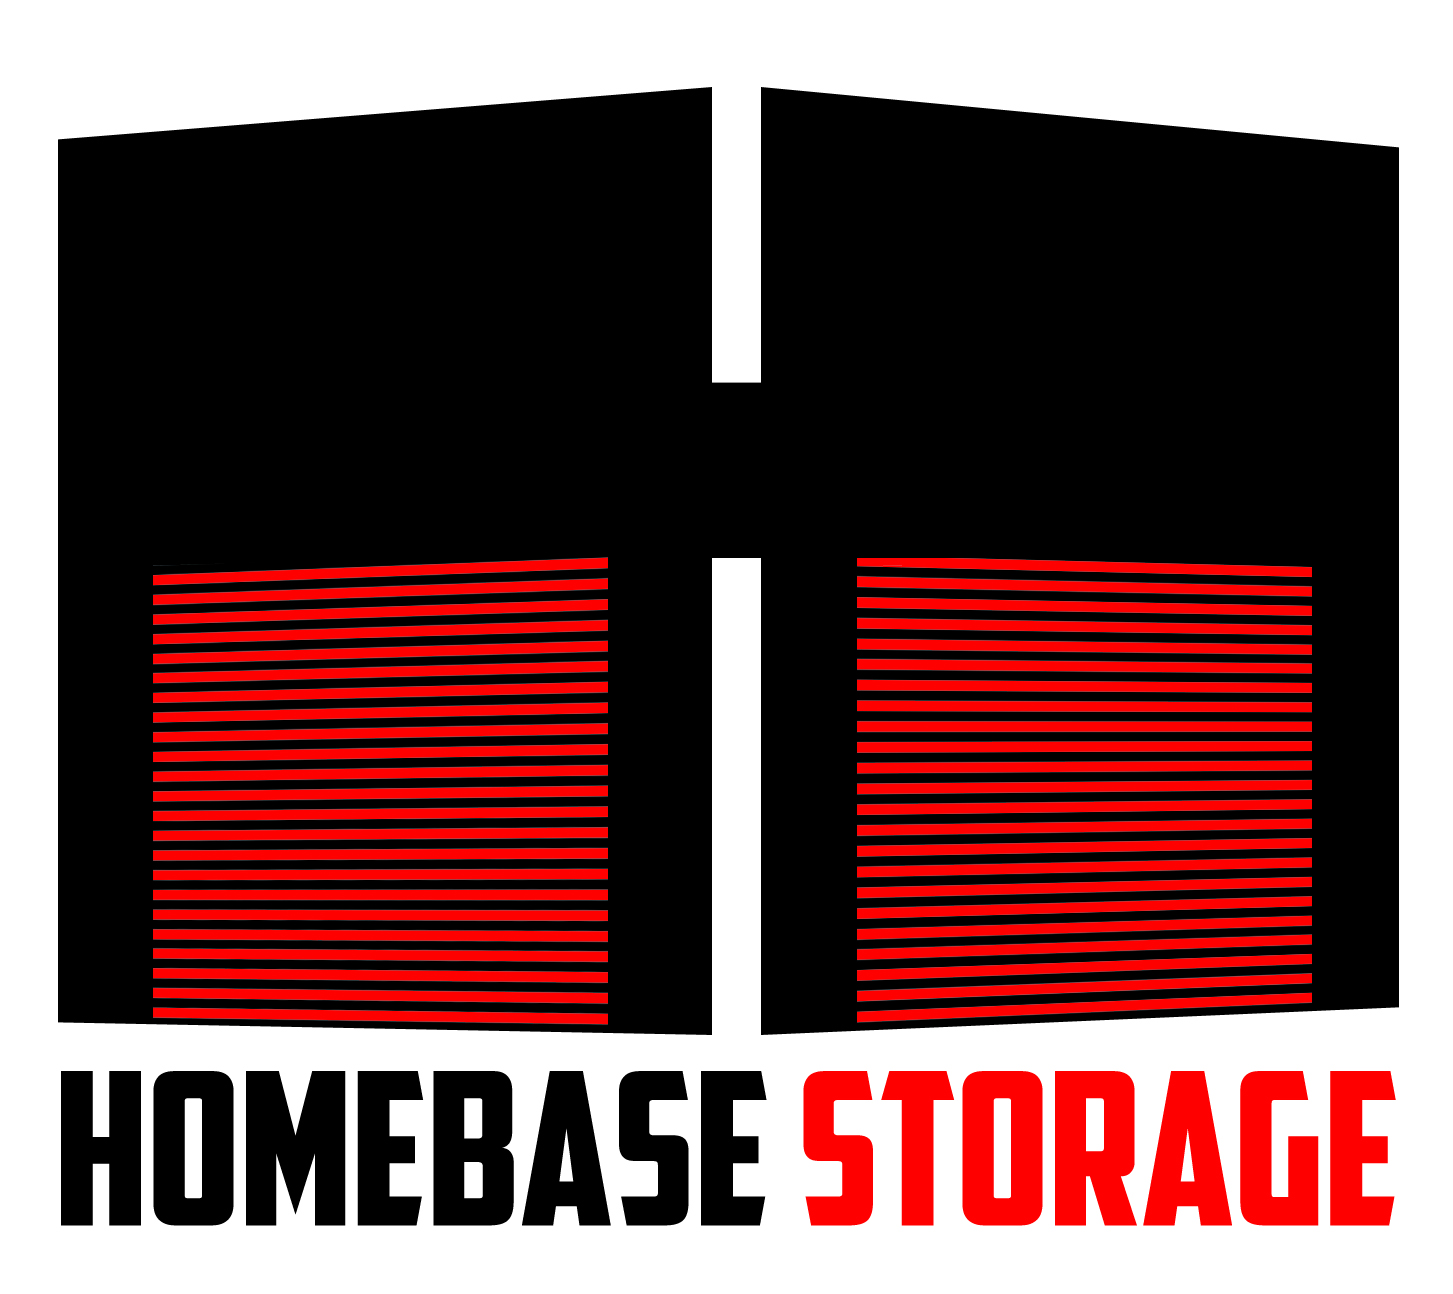 Homebase Storage-East